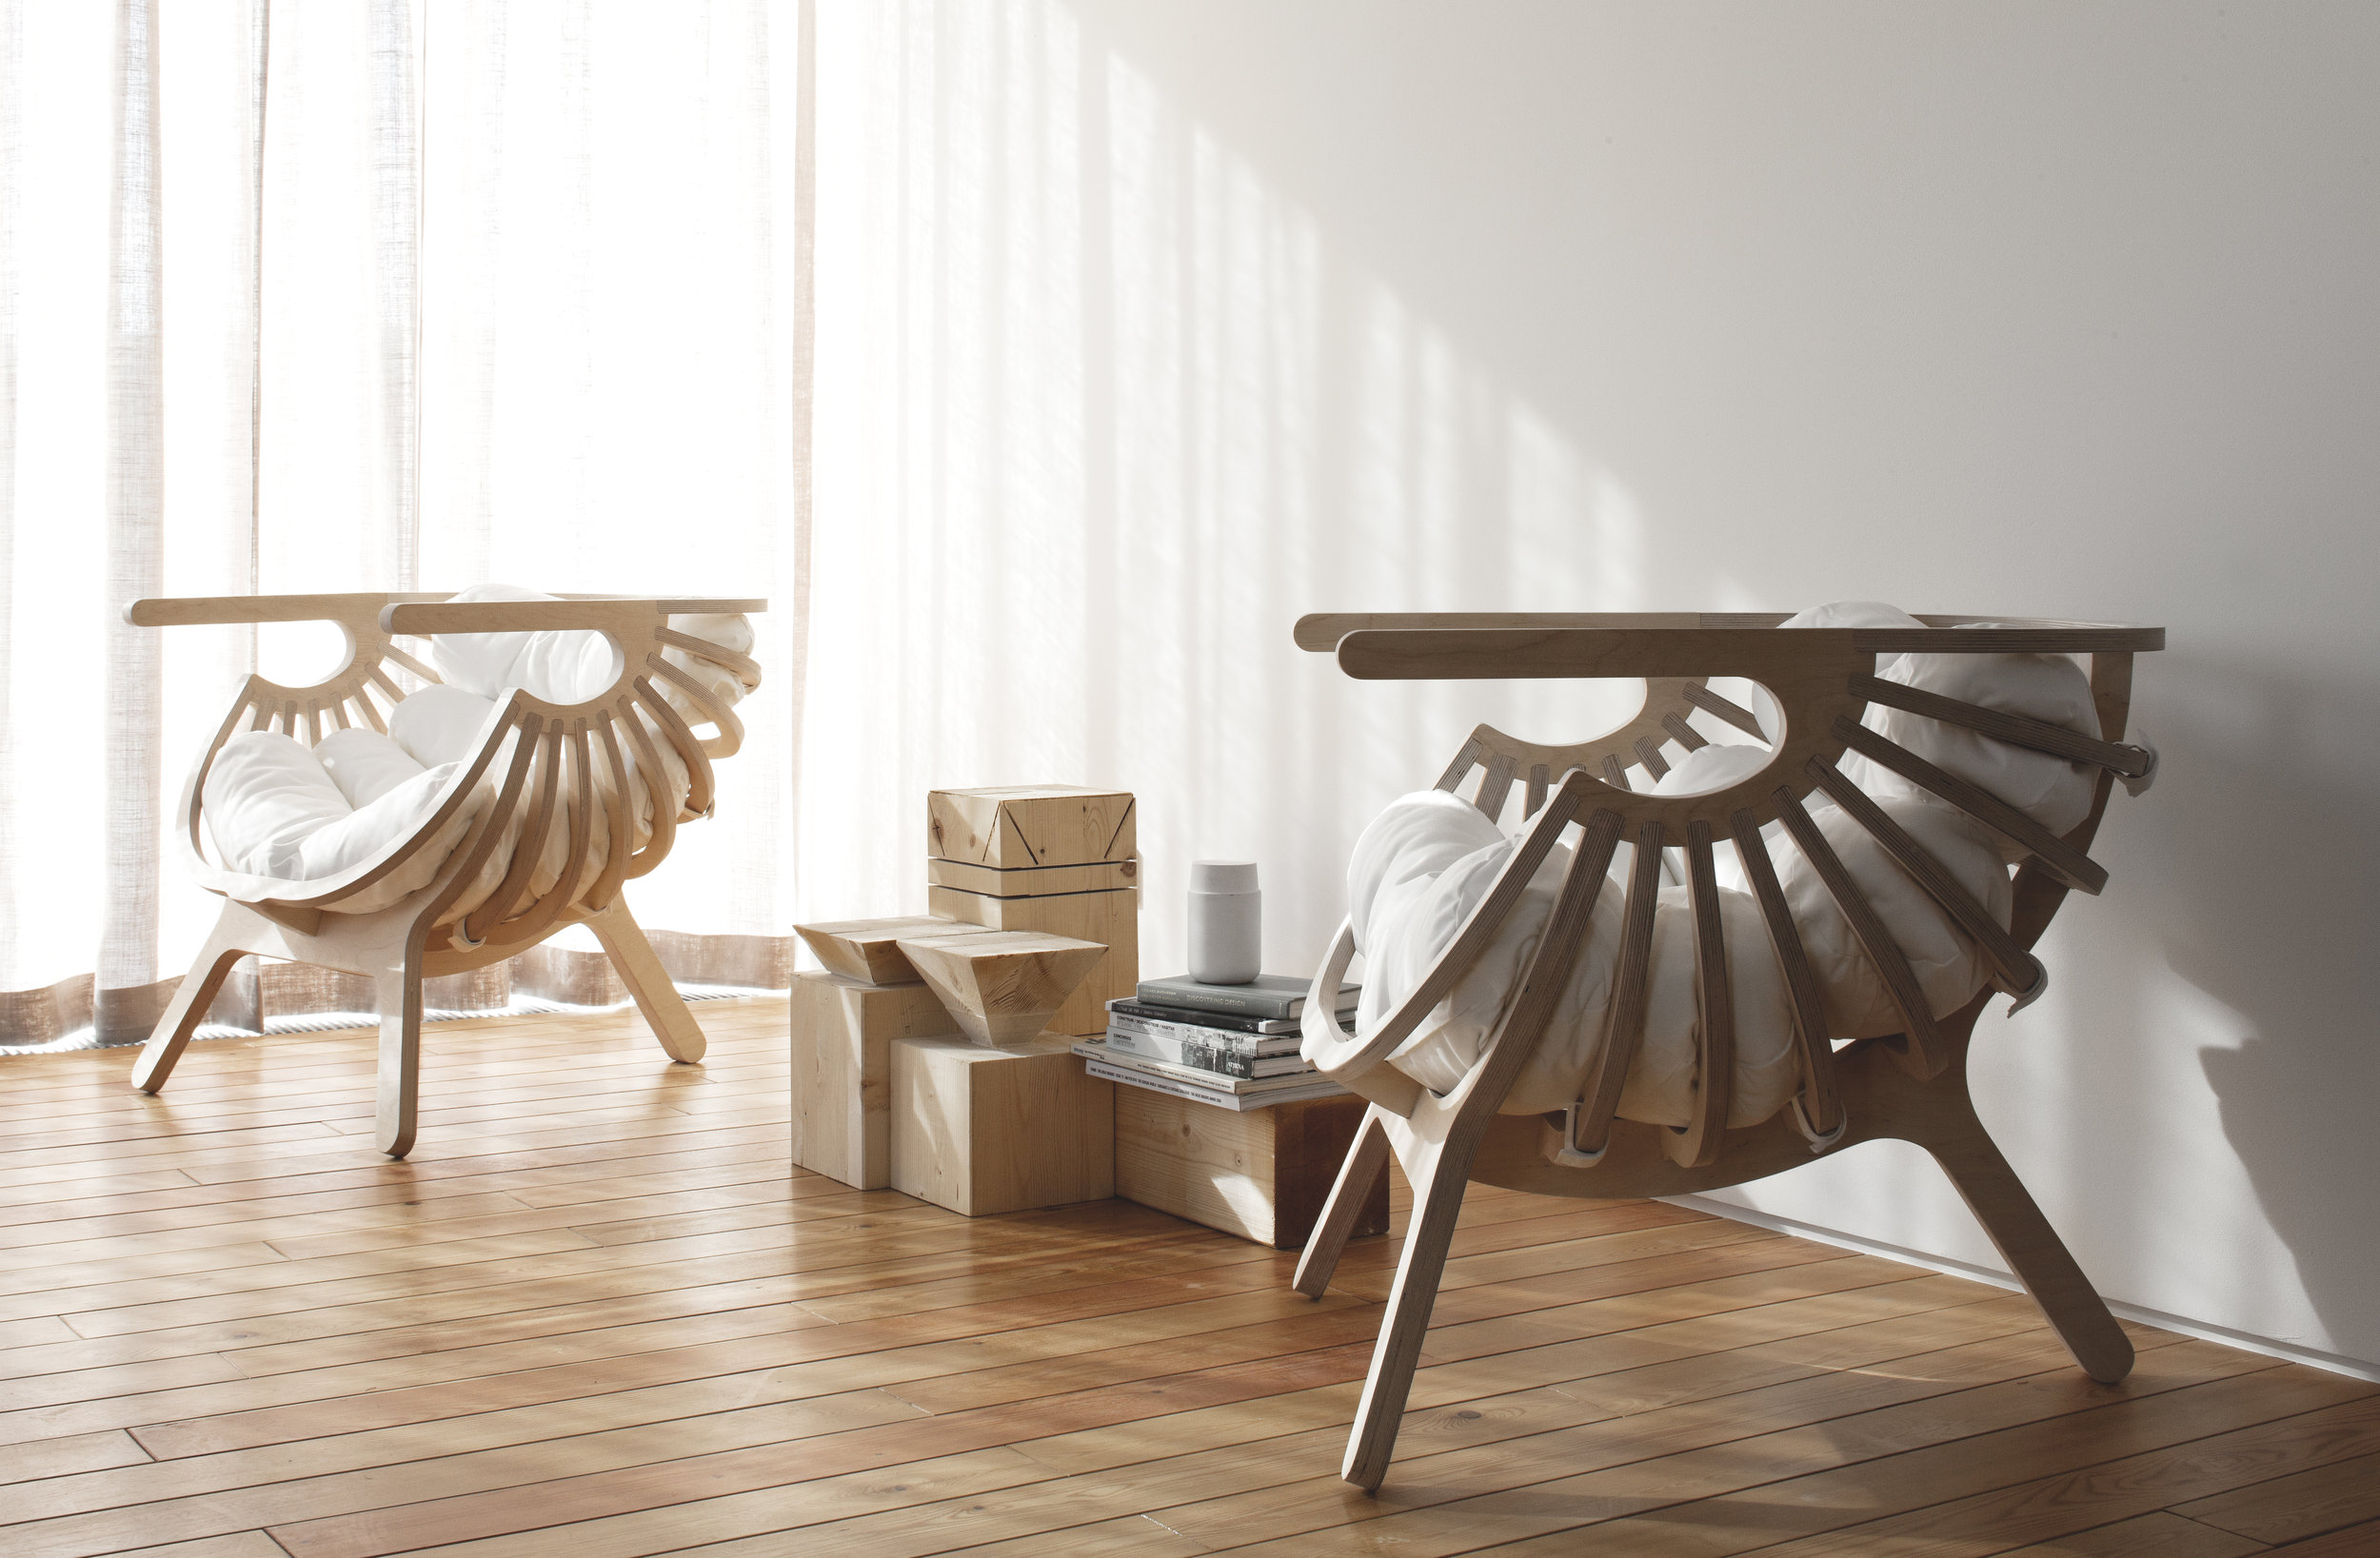 Shell Chair in Utopia House